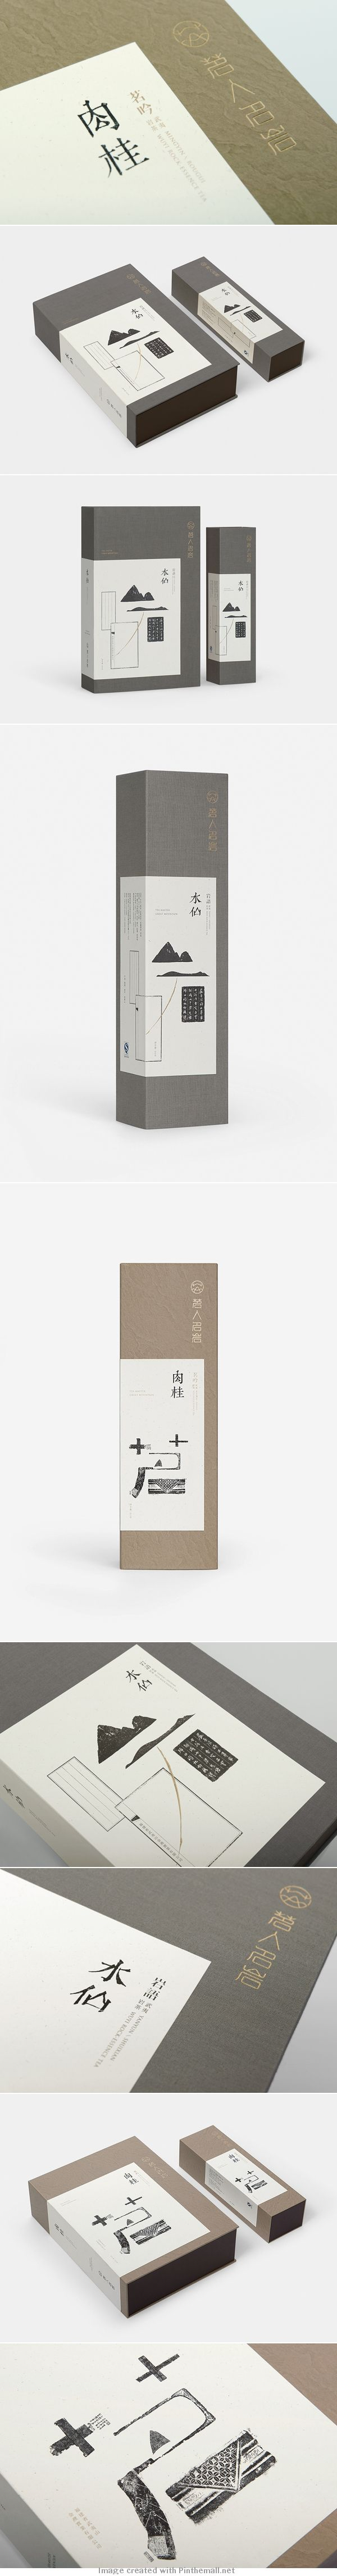 Mingren Mingyan Tea Packaging